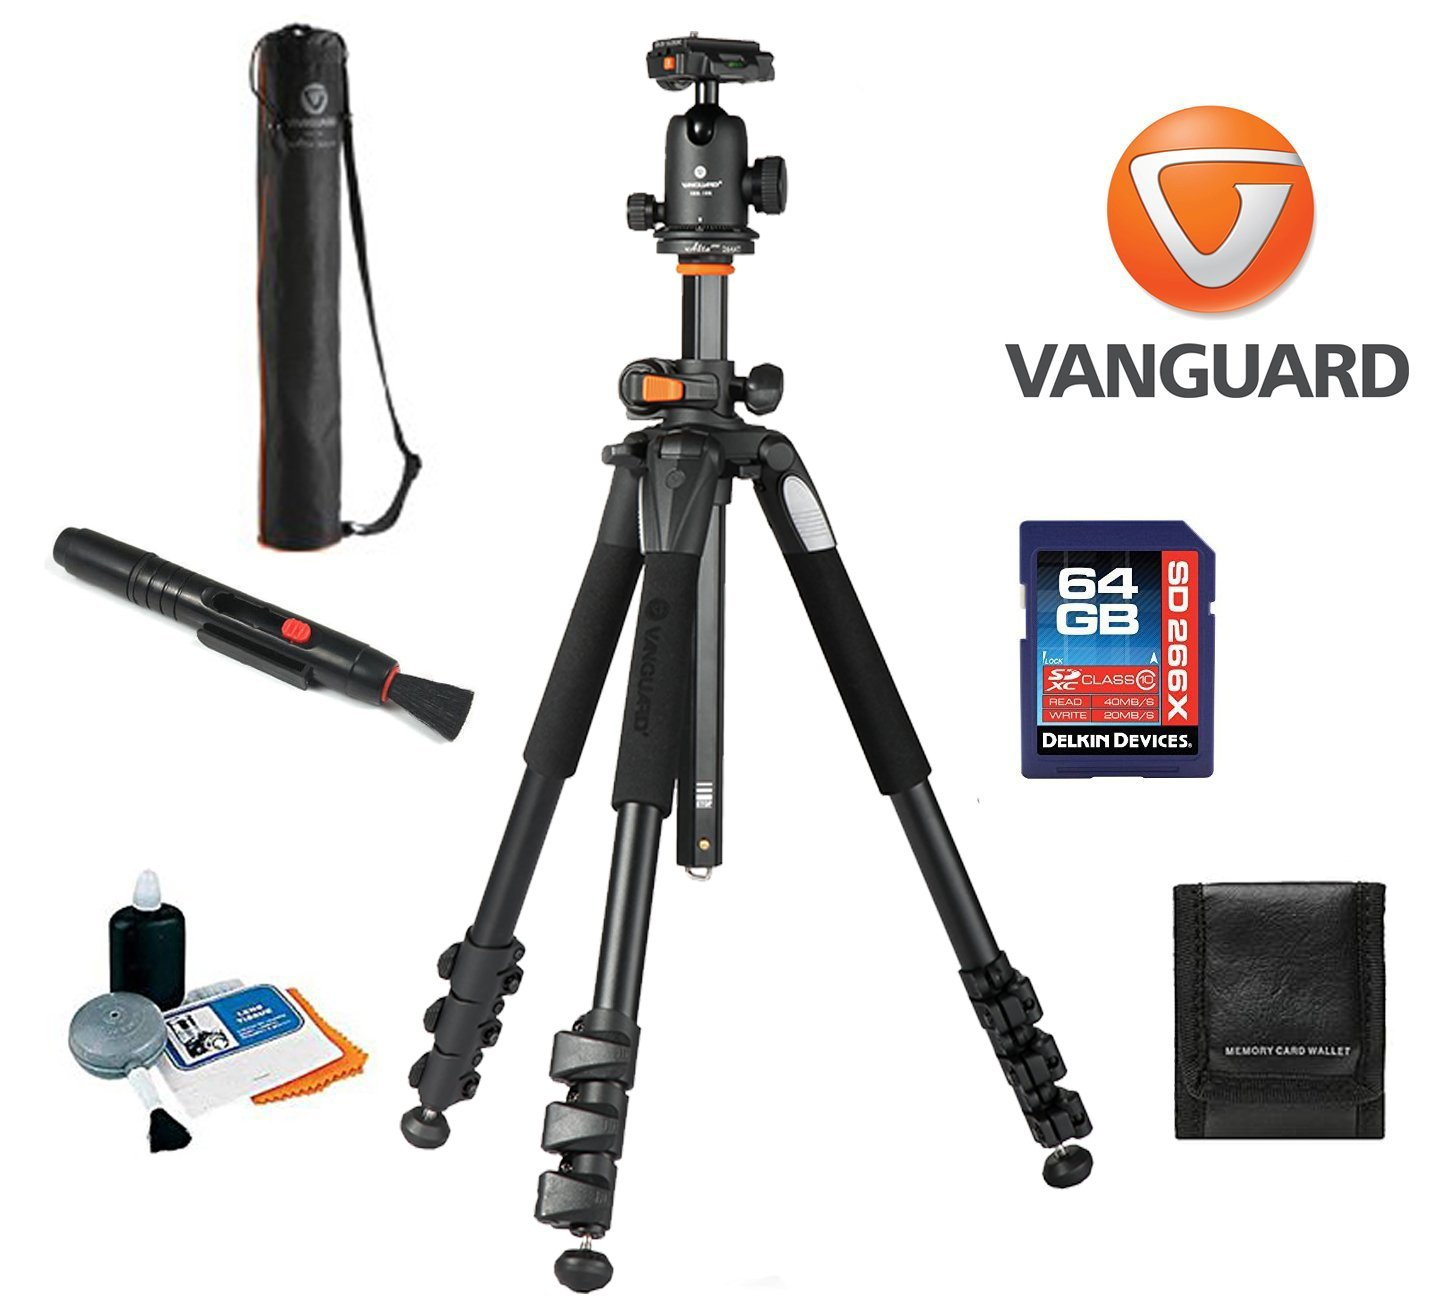 Vanguard Alta Pro 264AB 4-Section Aluminum Tripod with SBH-100 Ball Head + Vanguard Case, 64GB SDXC Card, Cleaning Kit, Lens Pen, Memory Card Wallet by Vanguard